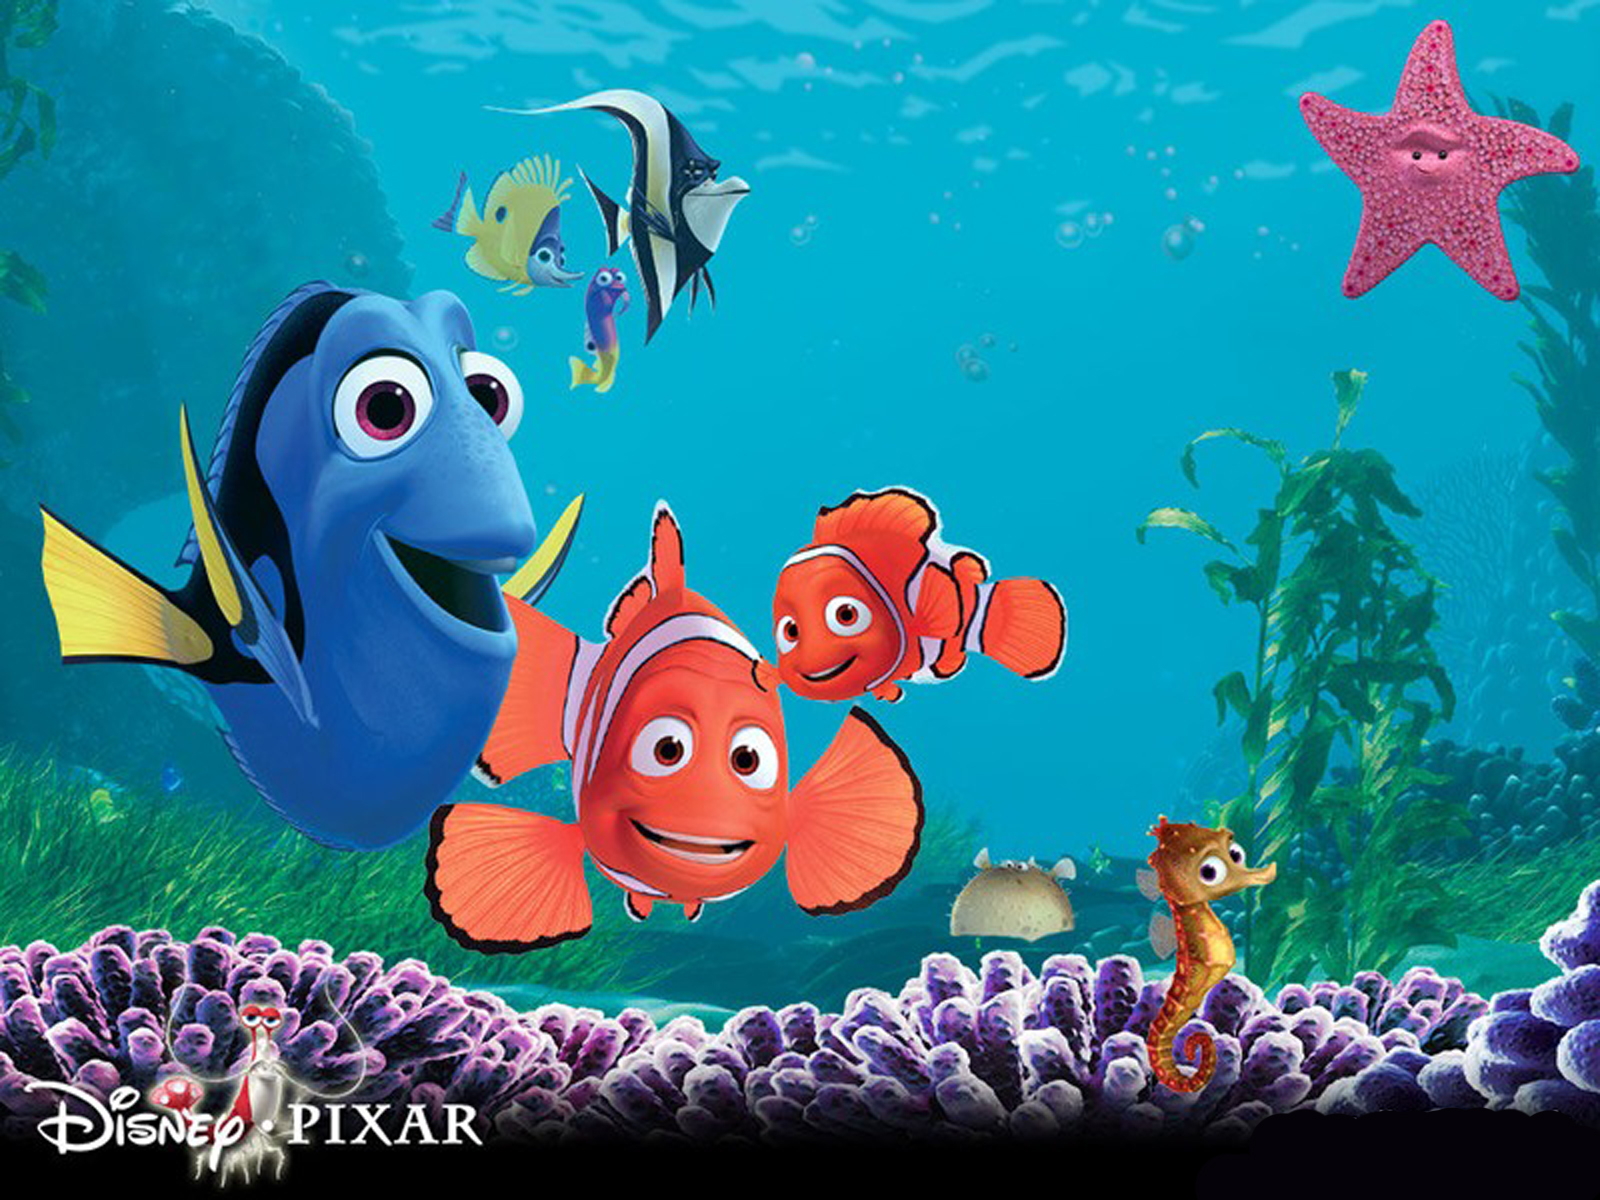 Finding Nemo 3D Movie Poster HD Wallpapers Download Wallpapers in 1600x1200